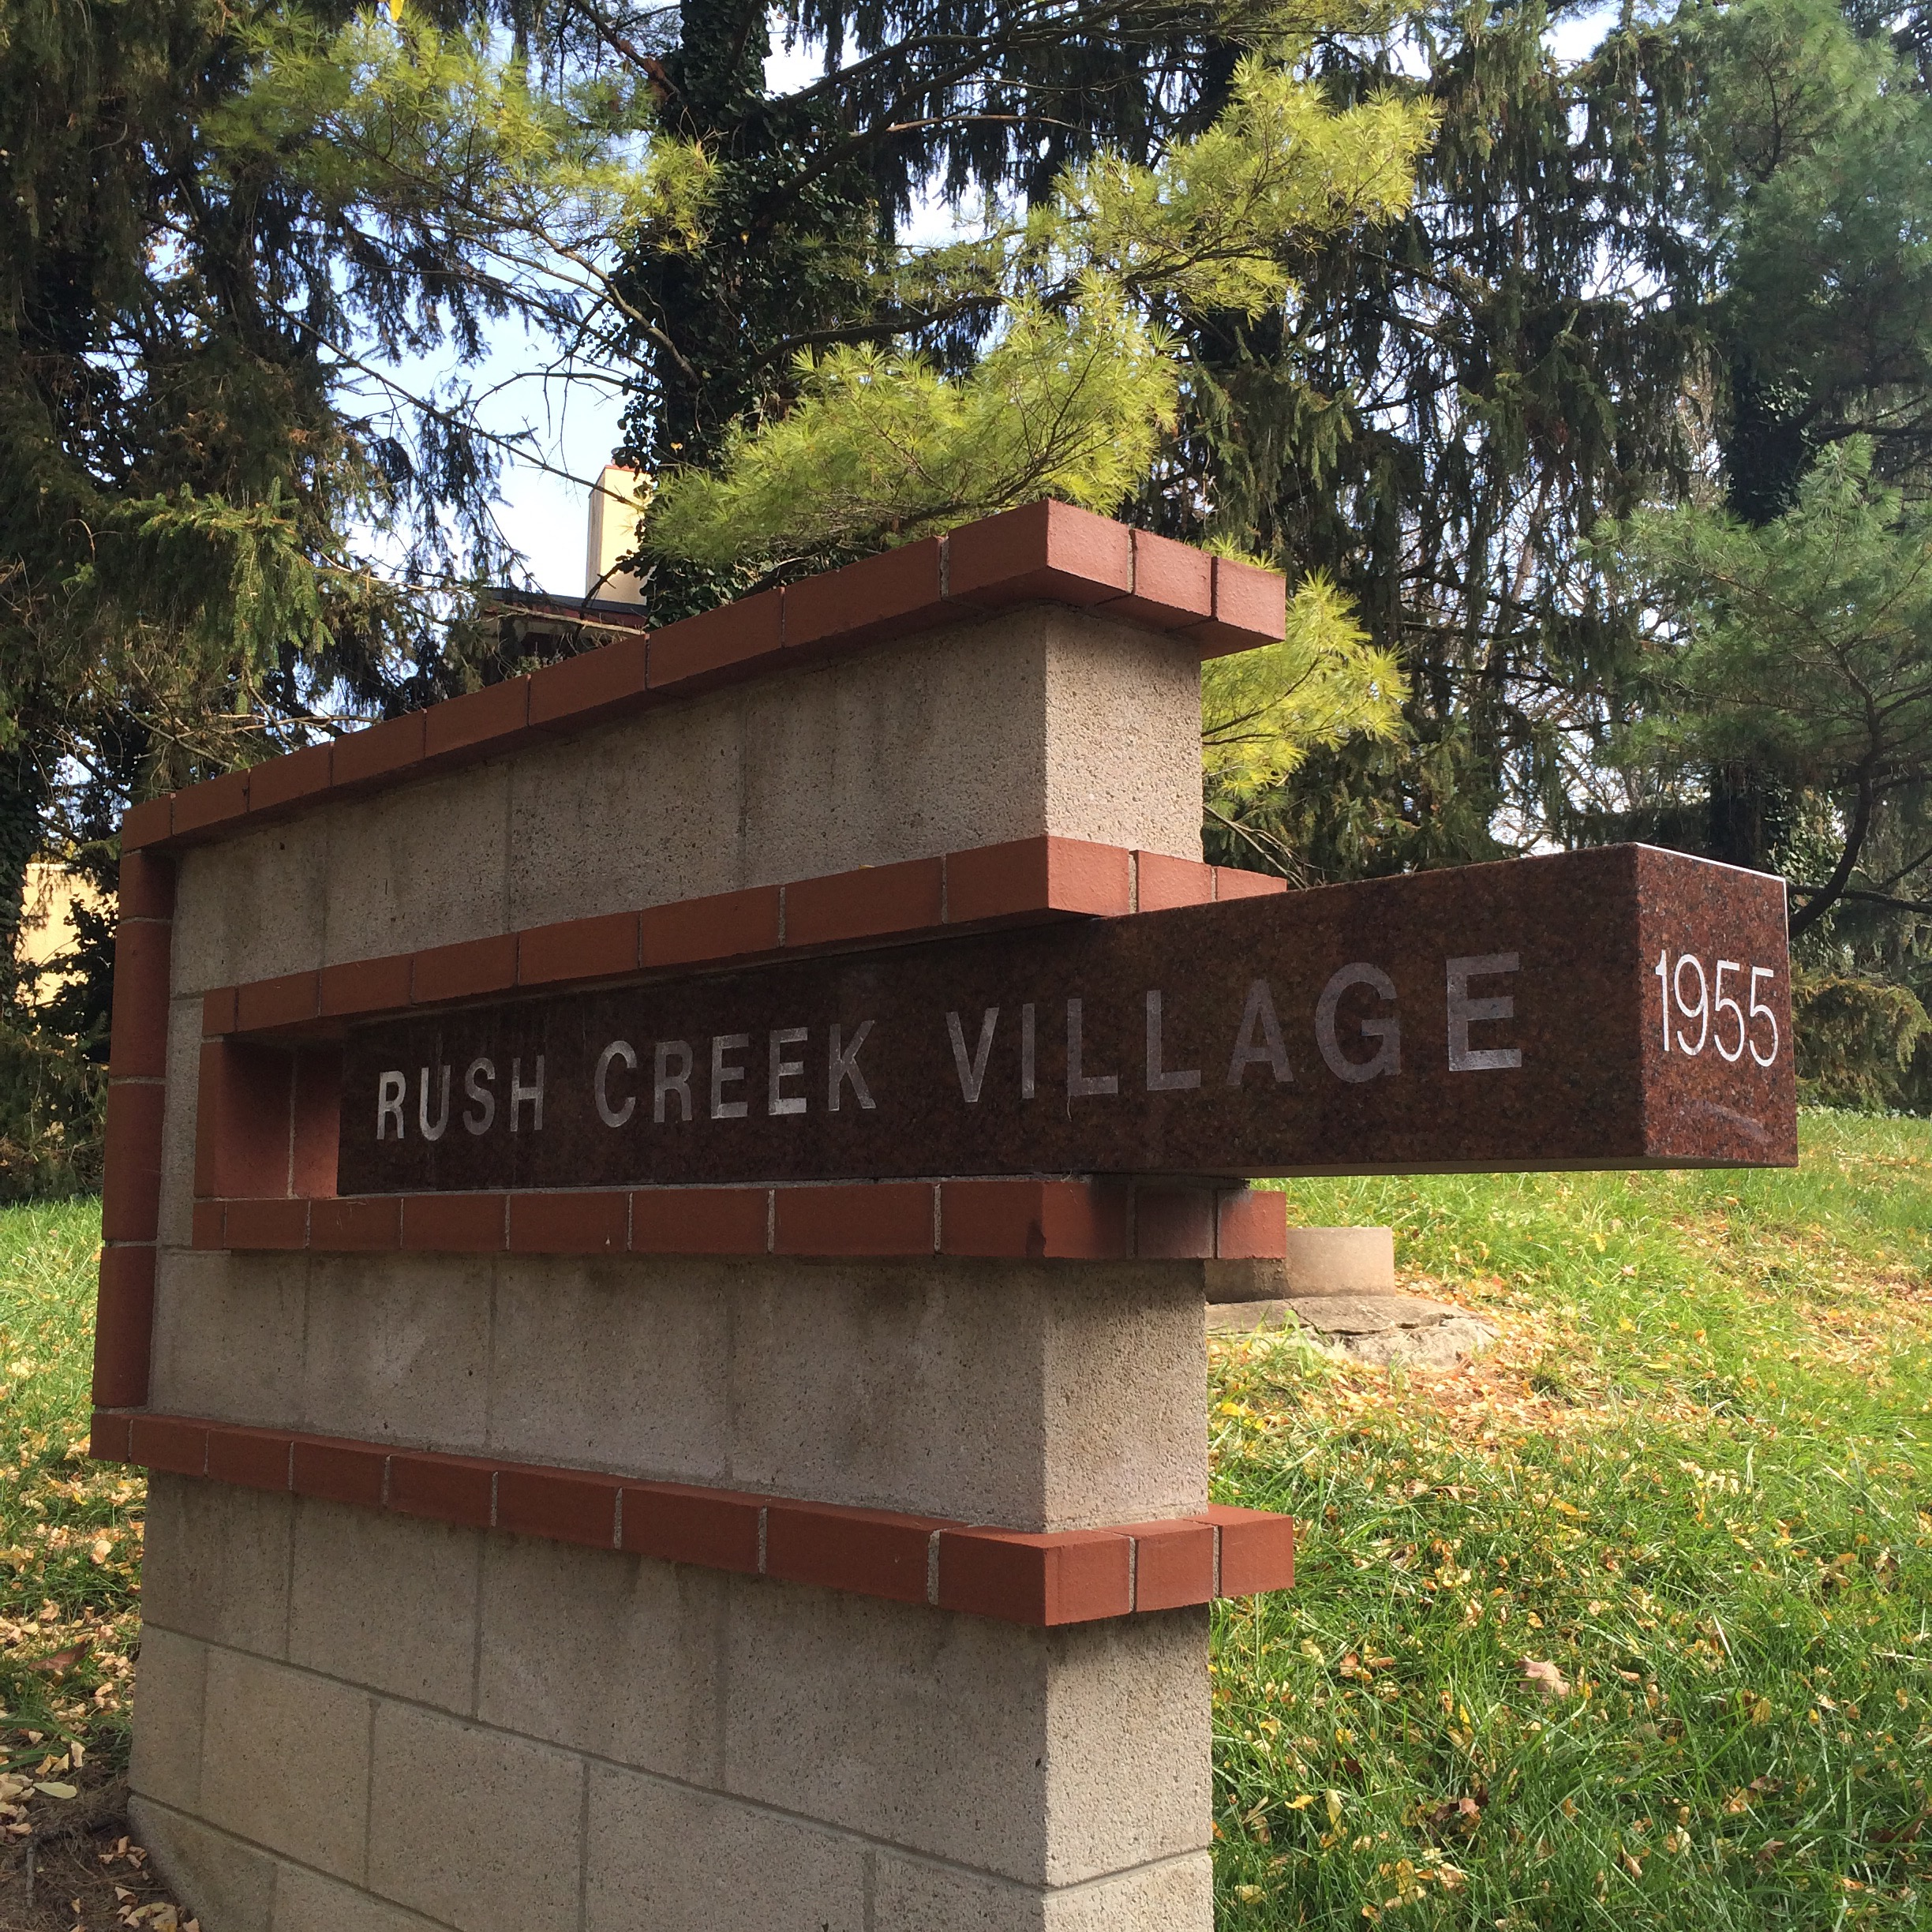 Rush Creek Village sign